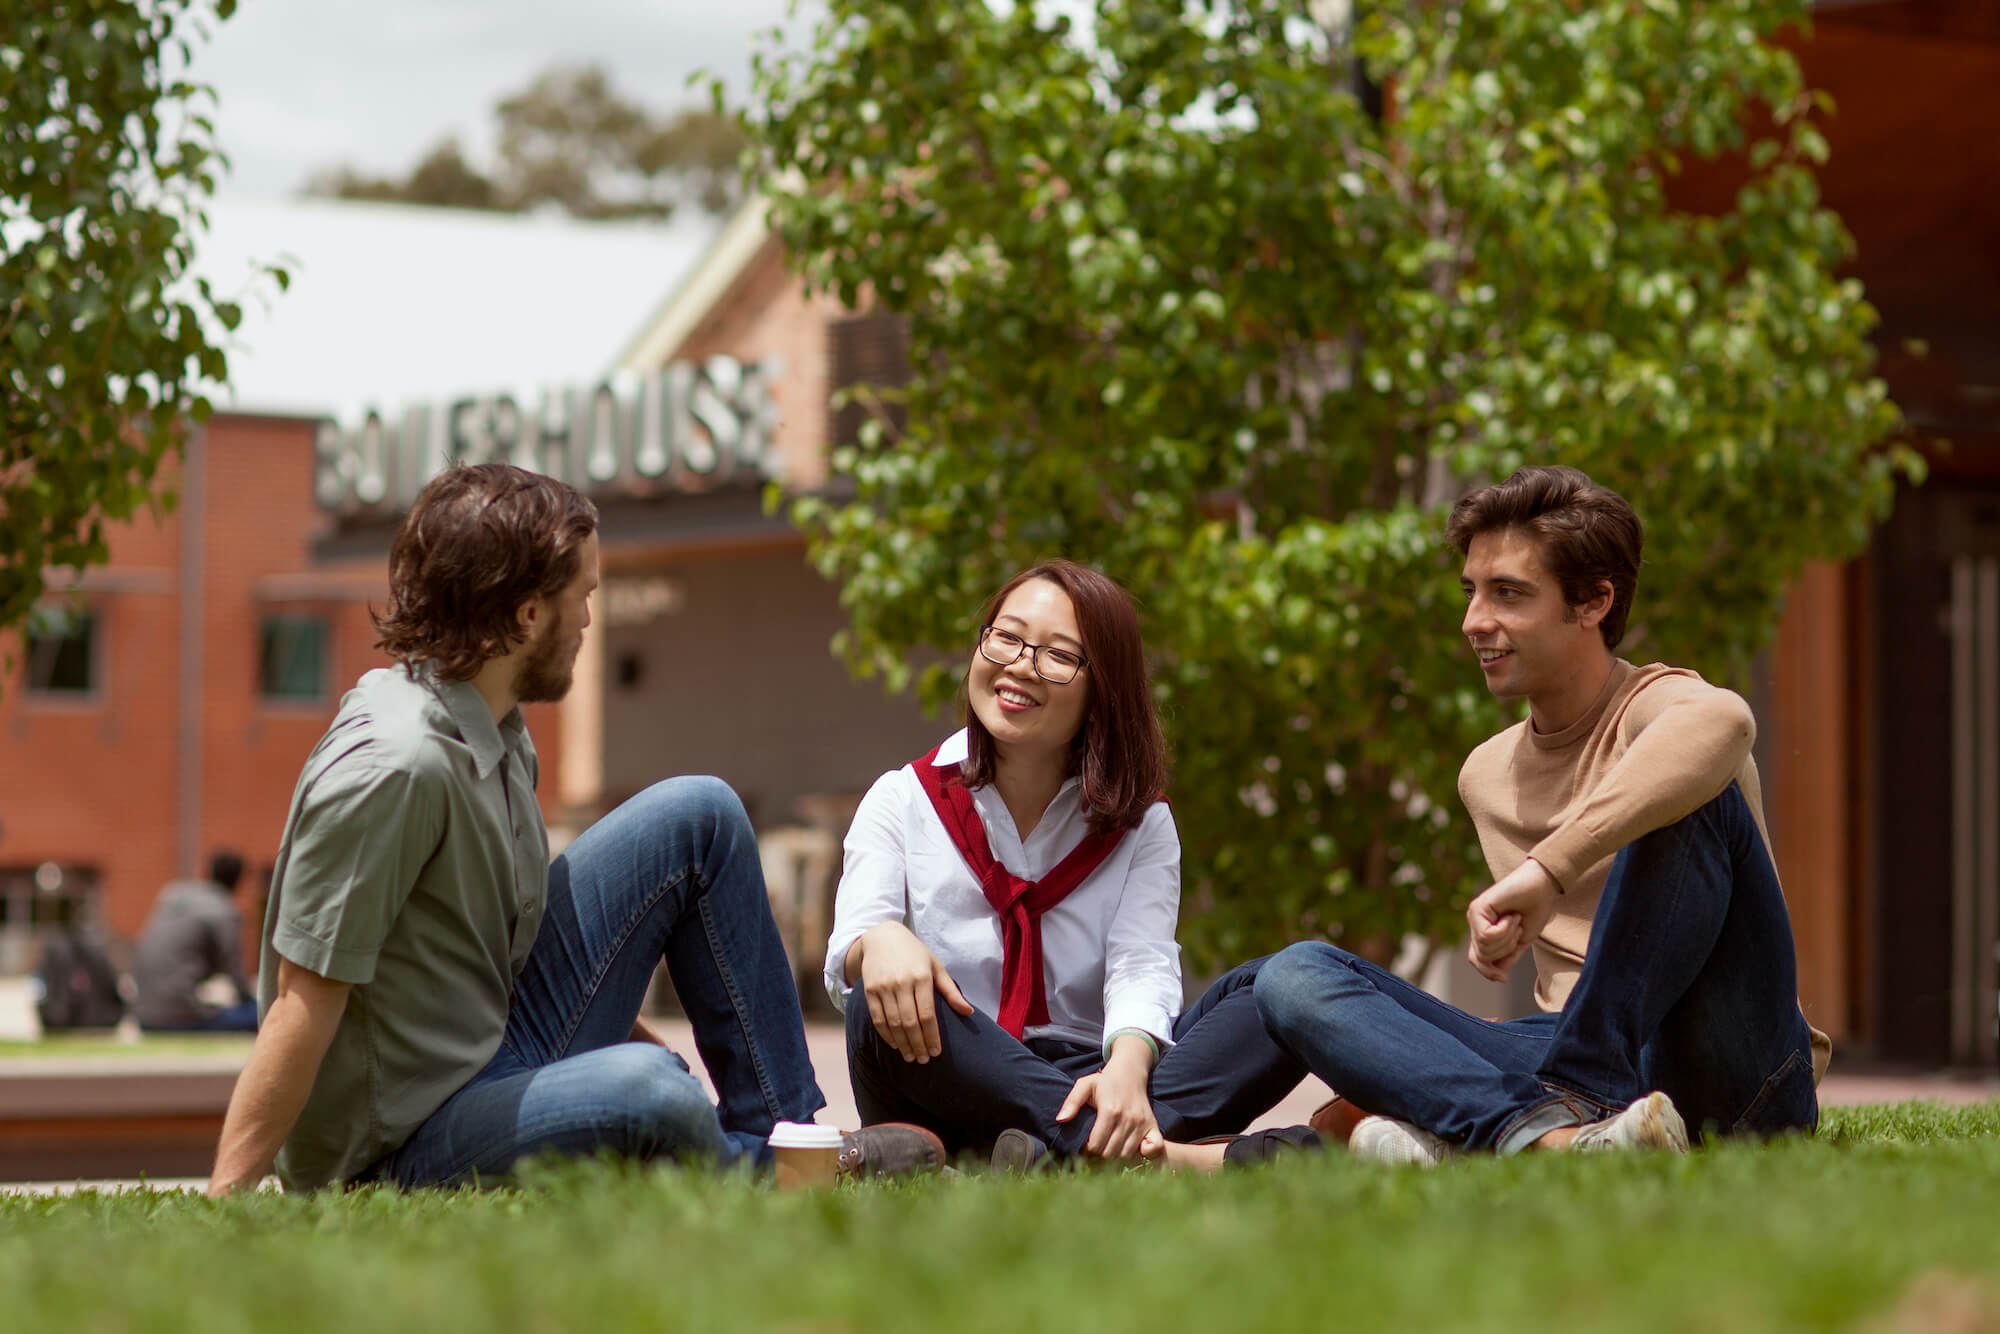 Three students sitting together on the grass at WSU Parramatta South campus